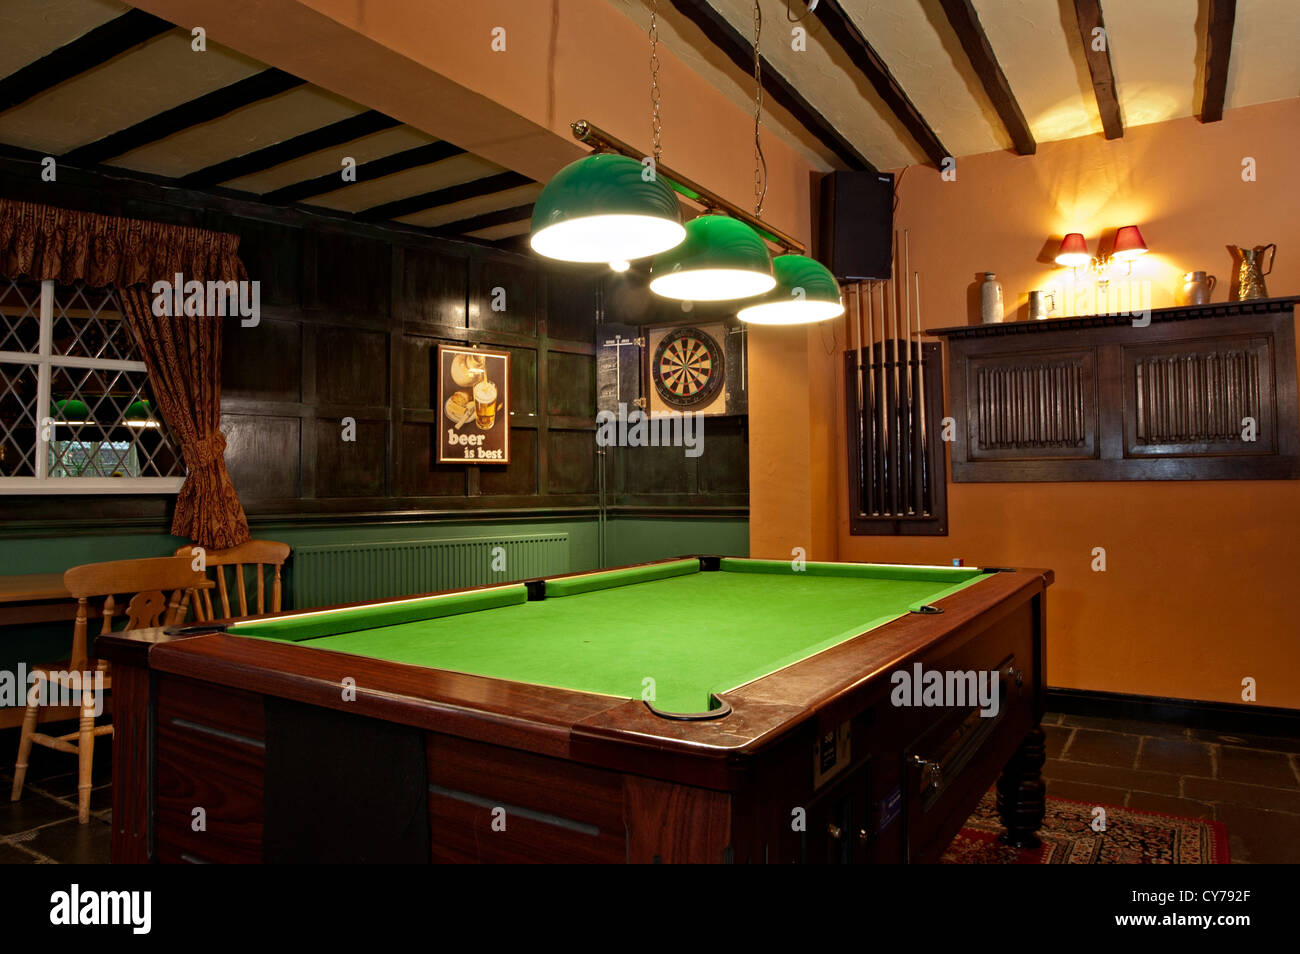 PUB SNOOKER - Play Free Online Sports Games in Full Screen